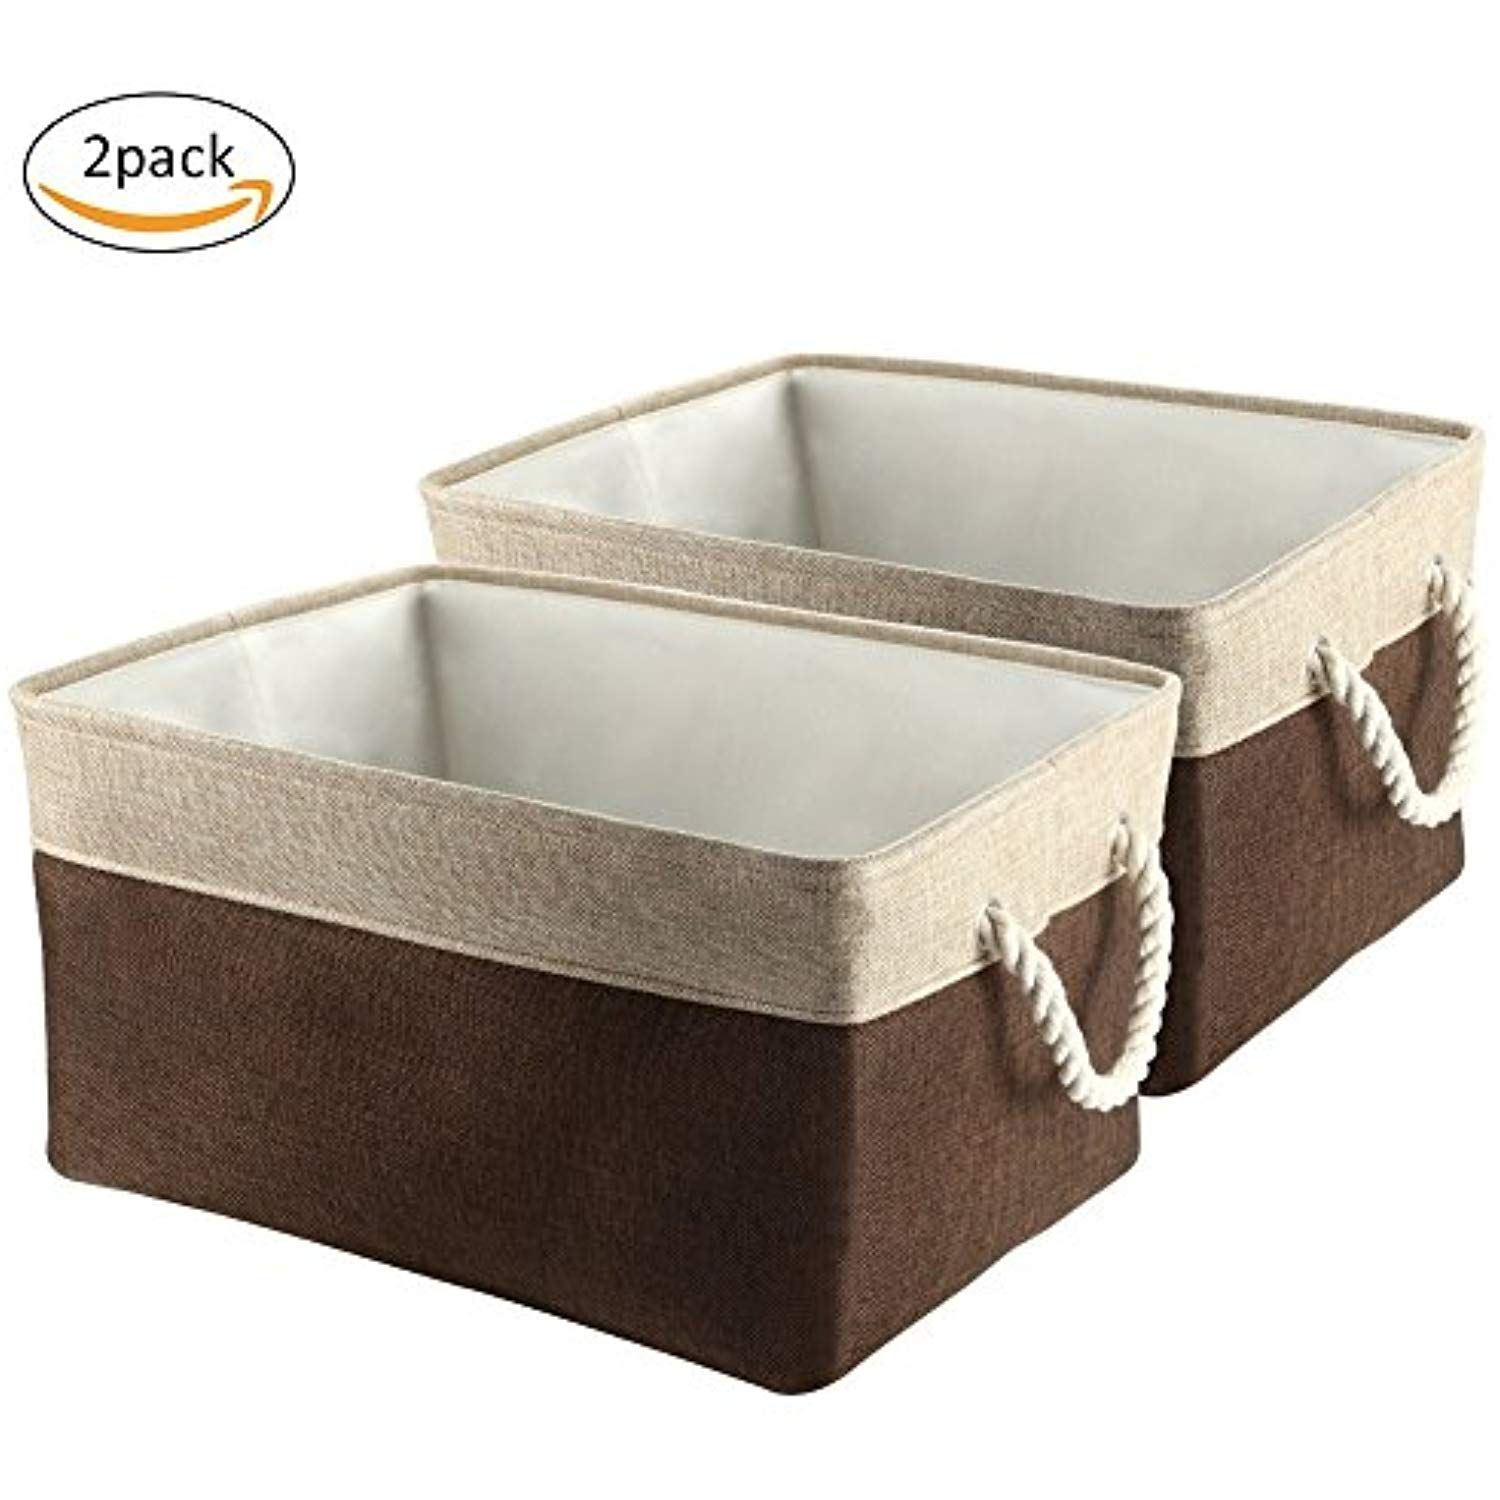 Collapsible Storage Bins, IdealHous Large Foldable Fabric Storage Cubes  Laundry Basket With Cotton Rope Handles For Kidu0027s Toys Books [2 Pack] ***  Continue ...